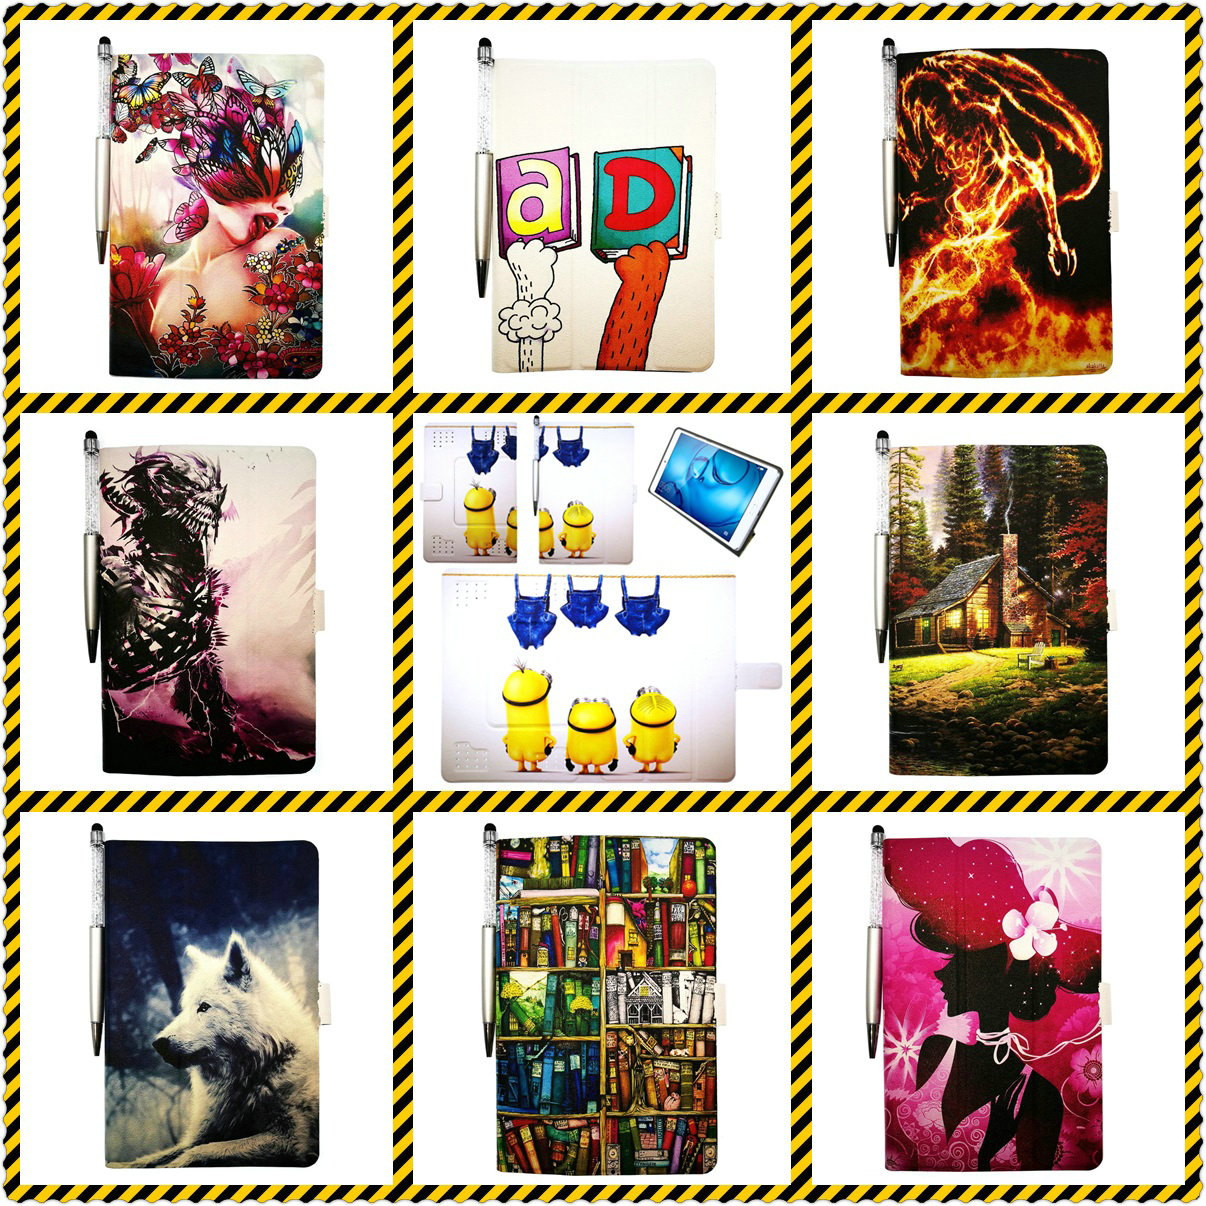 Tablet Case for Bb-Mobile Techno Mozg 7.85 (I785ap) Case Cover Couqe Hulle Funda Shell Custodie все для bb mobile